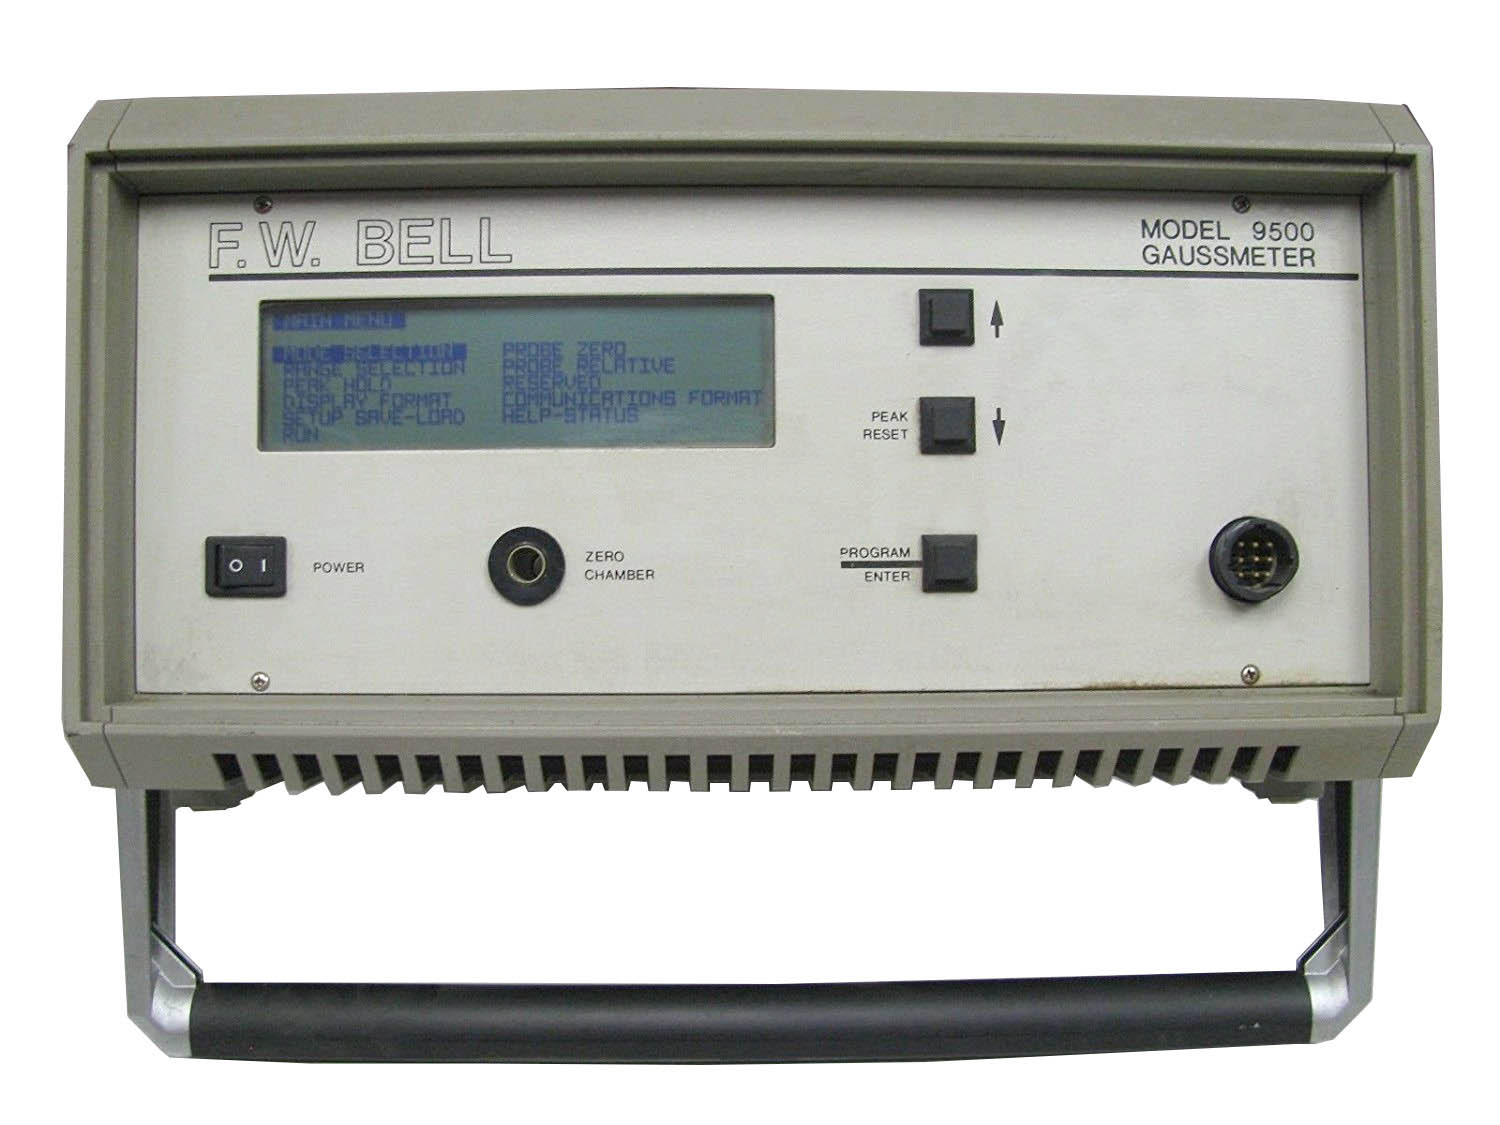 FW Bell 9500 Menu-Driven Gaussmeter